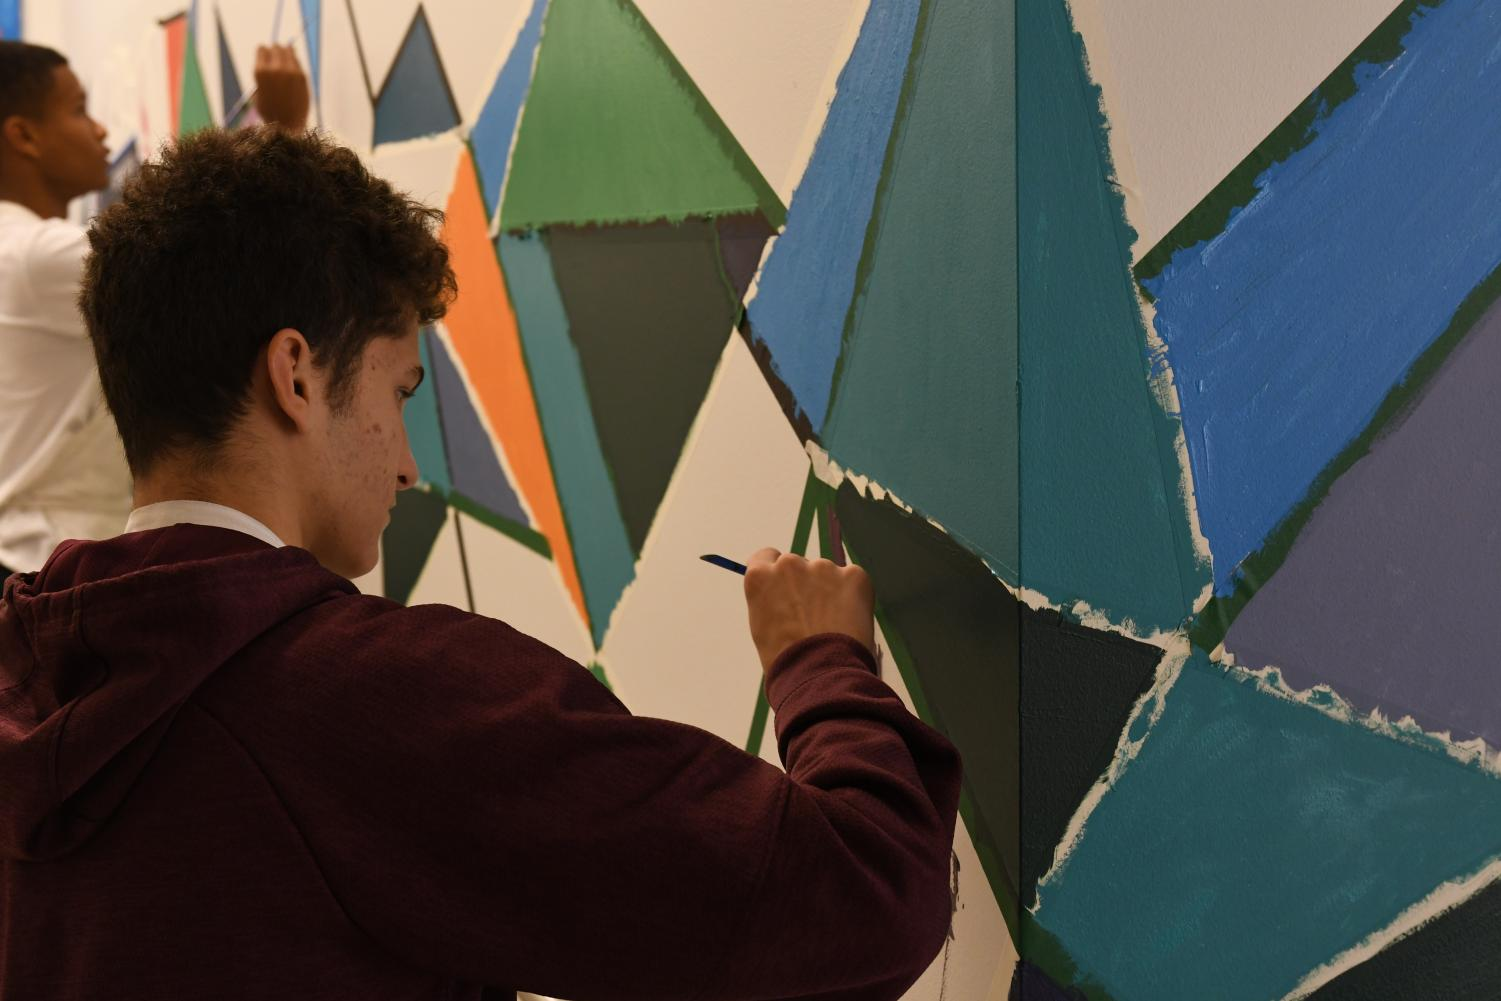 Arts students Gabriel Issa (foreground) and Brent Pennington (background) add personalized colors to hallways between Judd, the Middle School and Gordon Parks Arts Hall. The mural was inspired by the artwork of Amanda Williams, who was graduated from Lab in 1992.